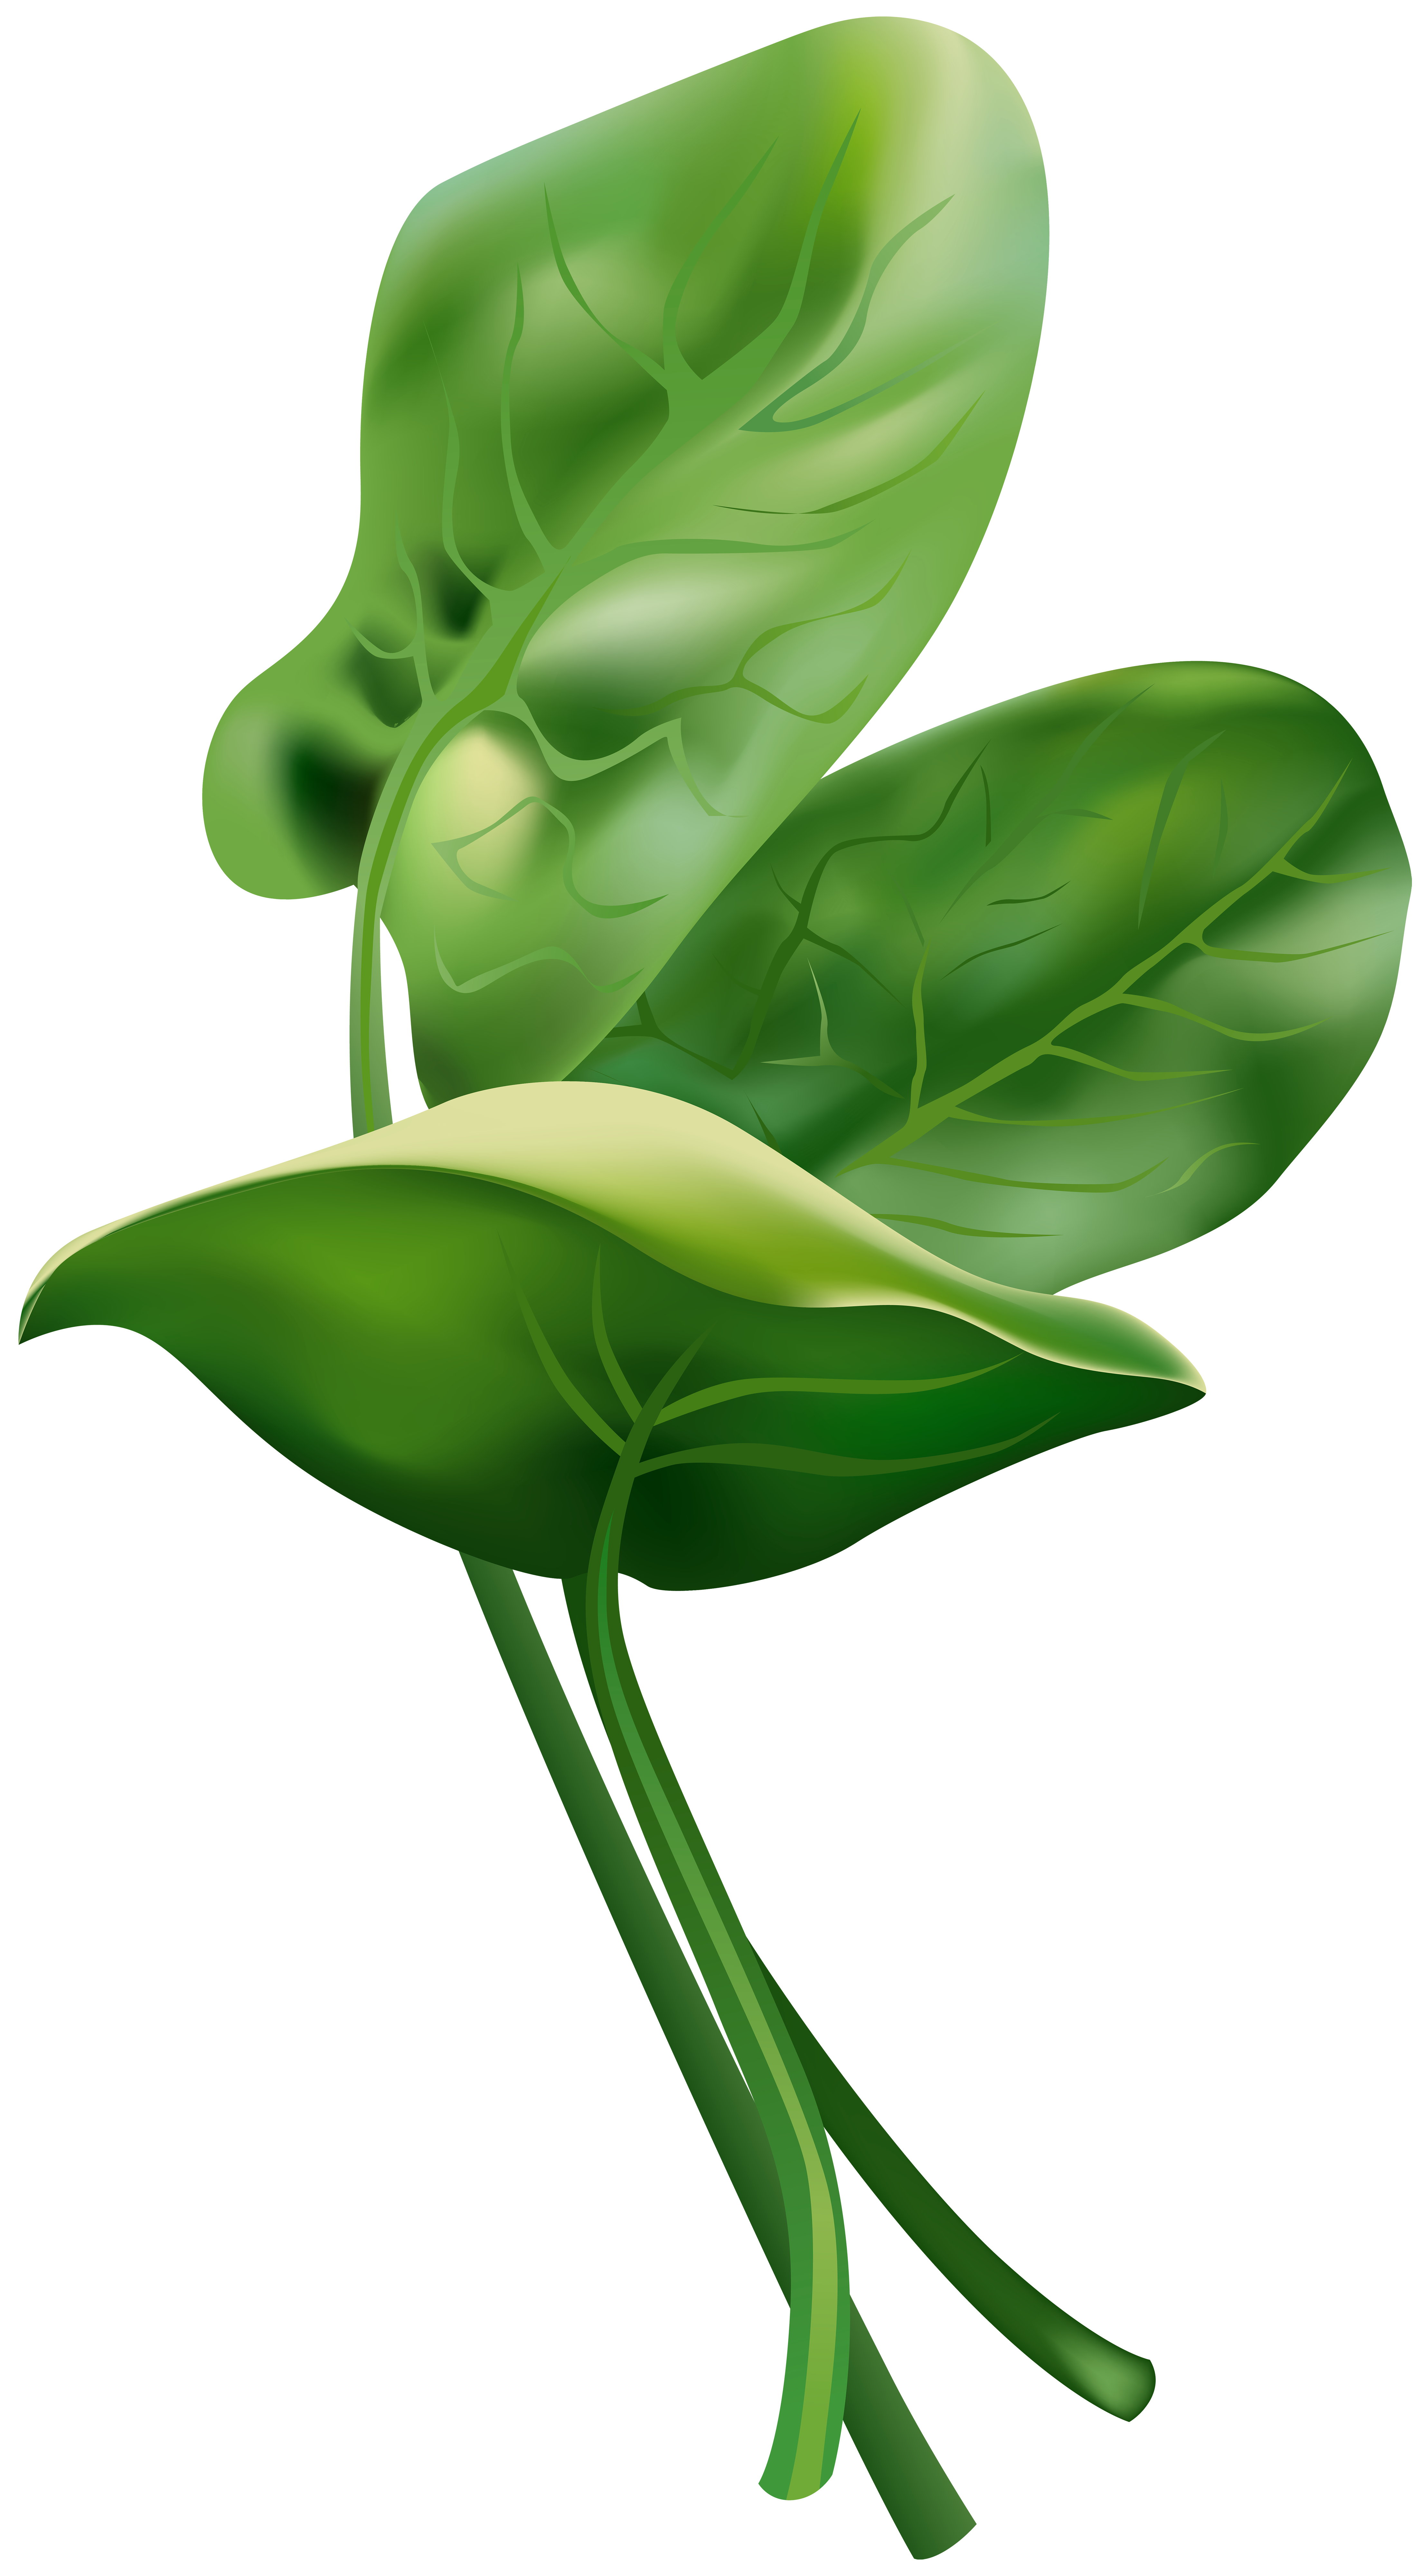 Spinach Free PNG Clip Art Image.